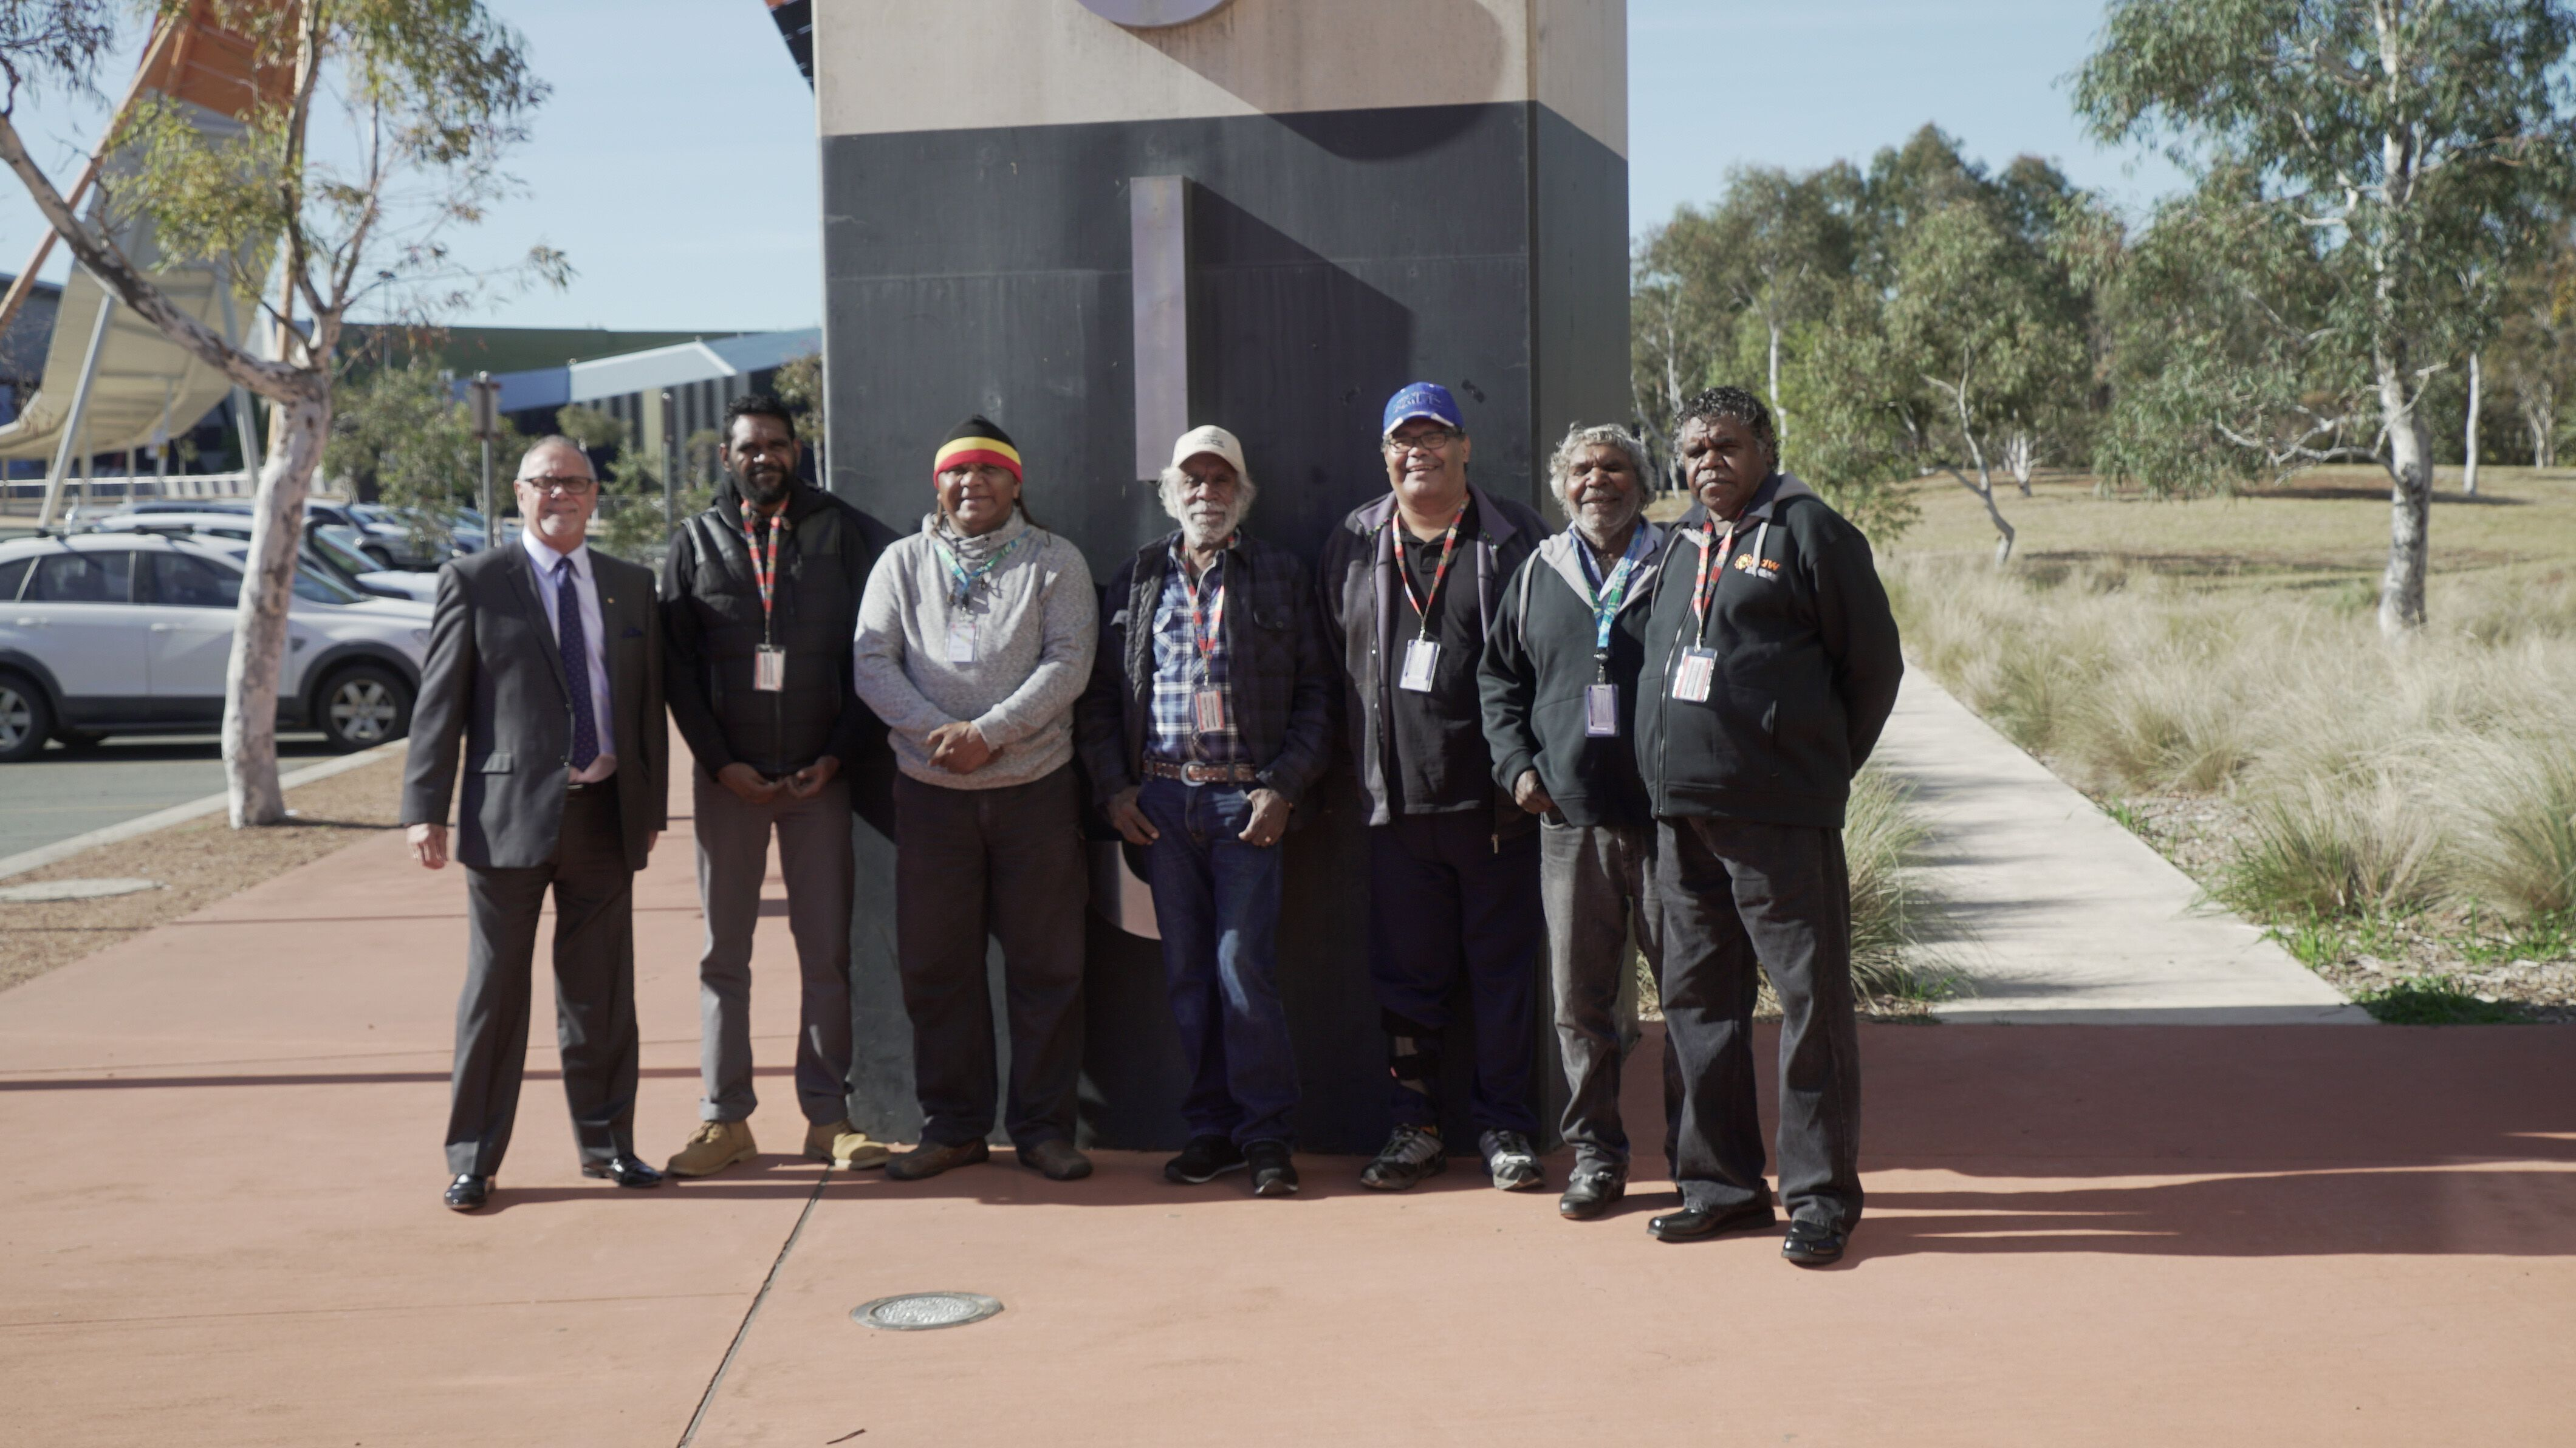 Arrernte and Warlpiri representatives with WCE staff collaborate on the repatriation of Olive Pink's Collection.  From left to right: Russell Taylor, AM, Chief Executive Office of AIATSIS, Simon Fisher Junior, Baydon Williams, Peter Wallace, Mick Campbell, Harry Jones and Simon Fisher Senior.